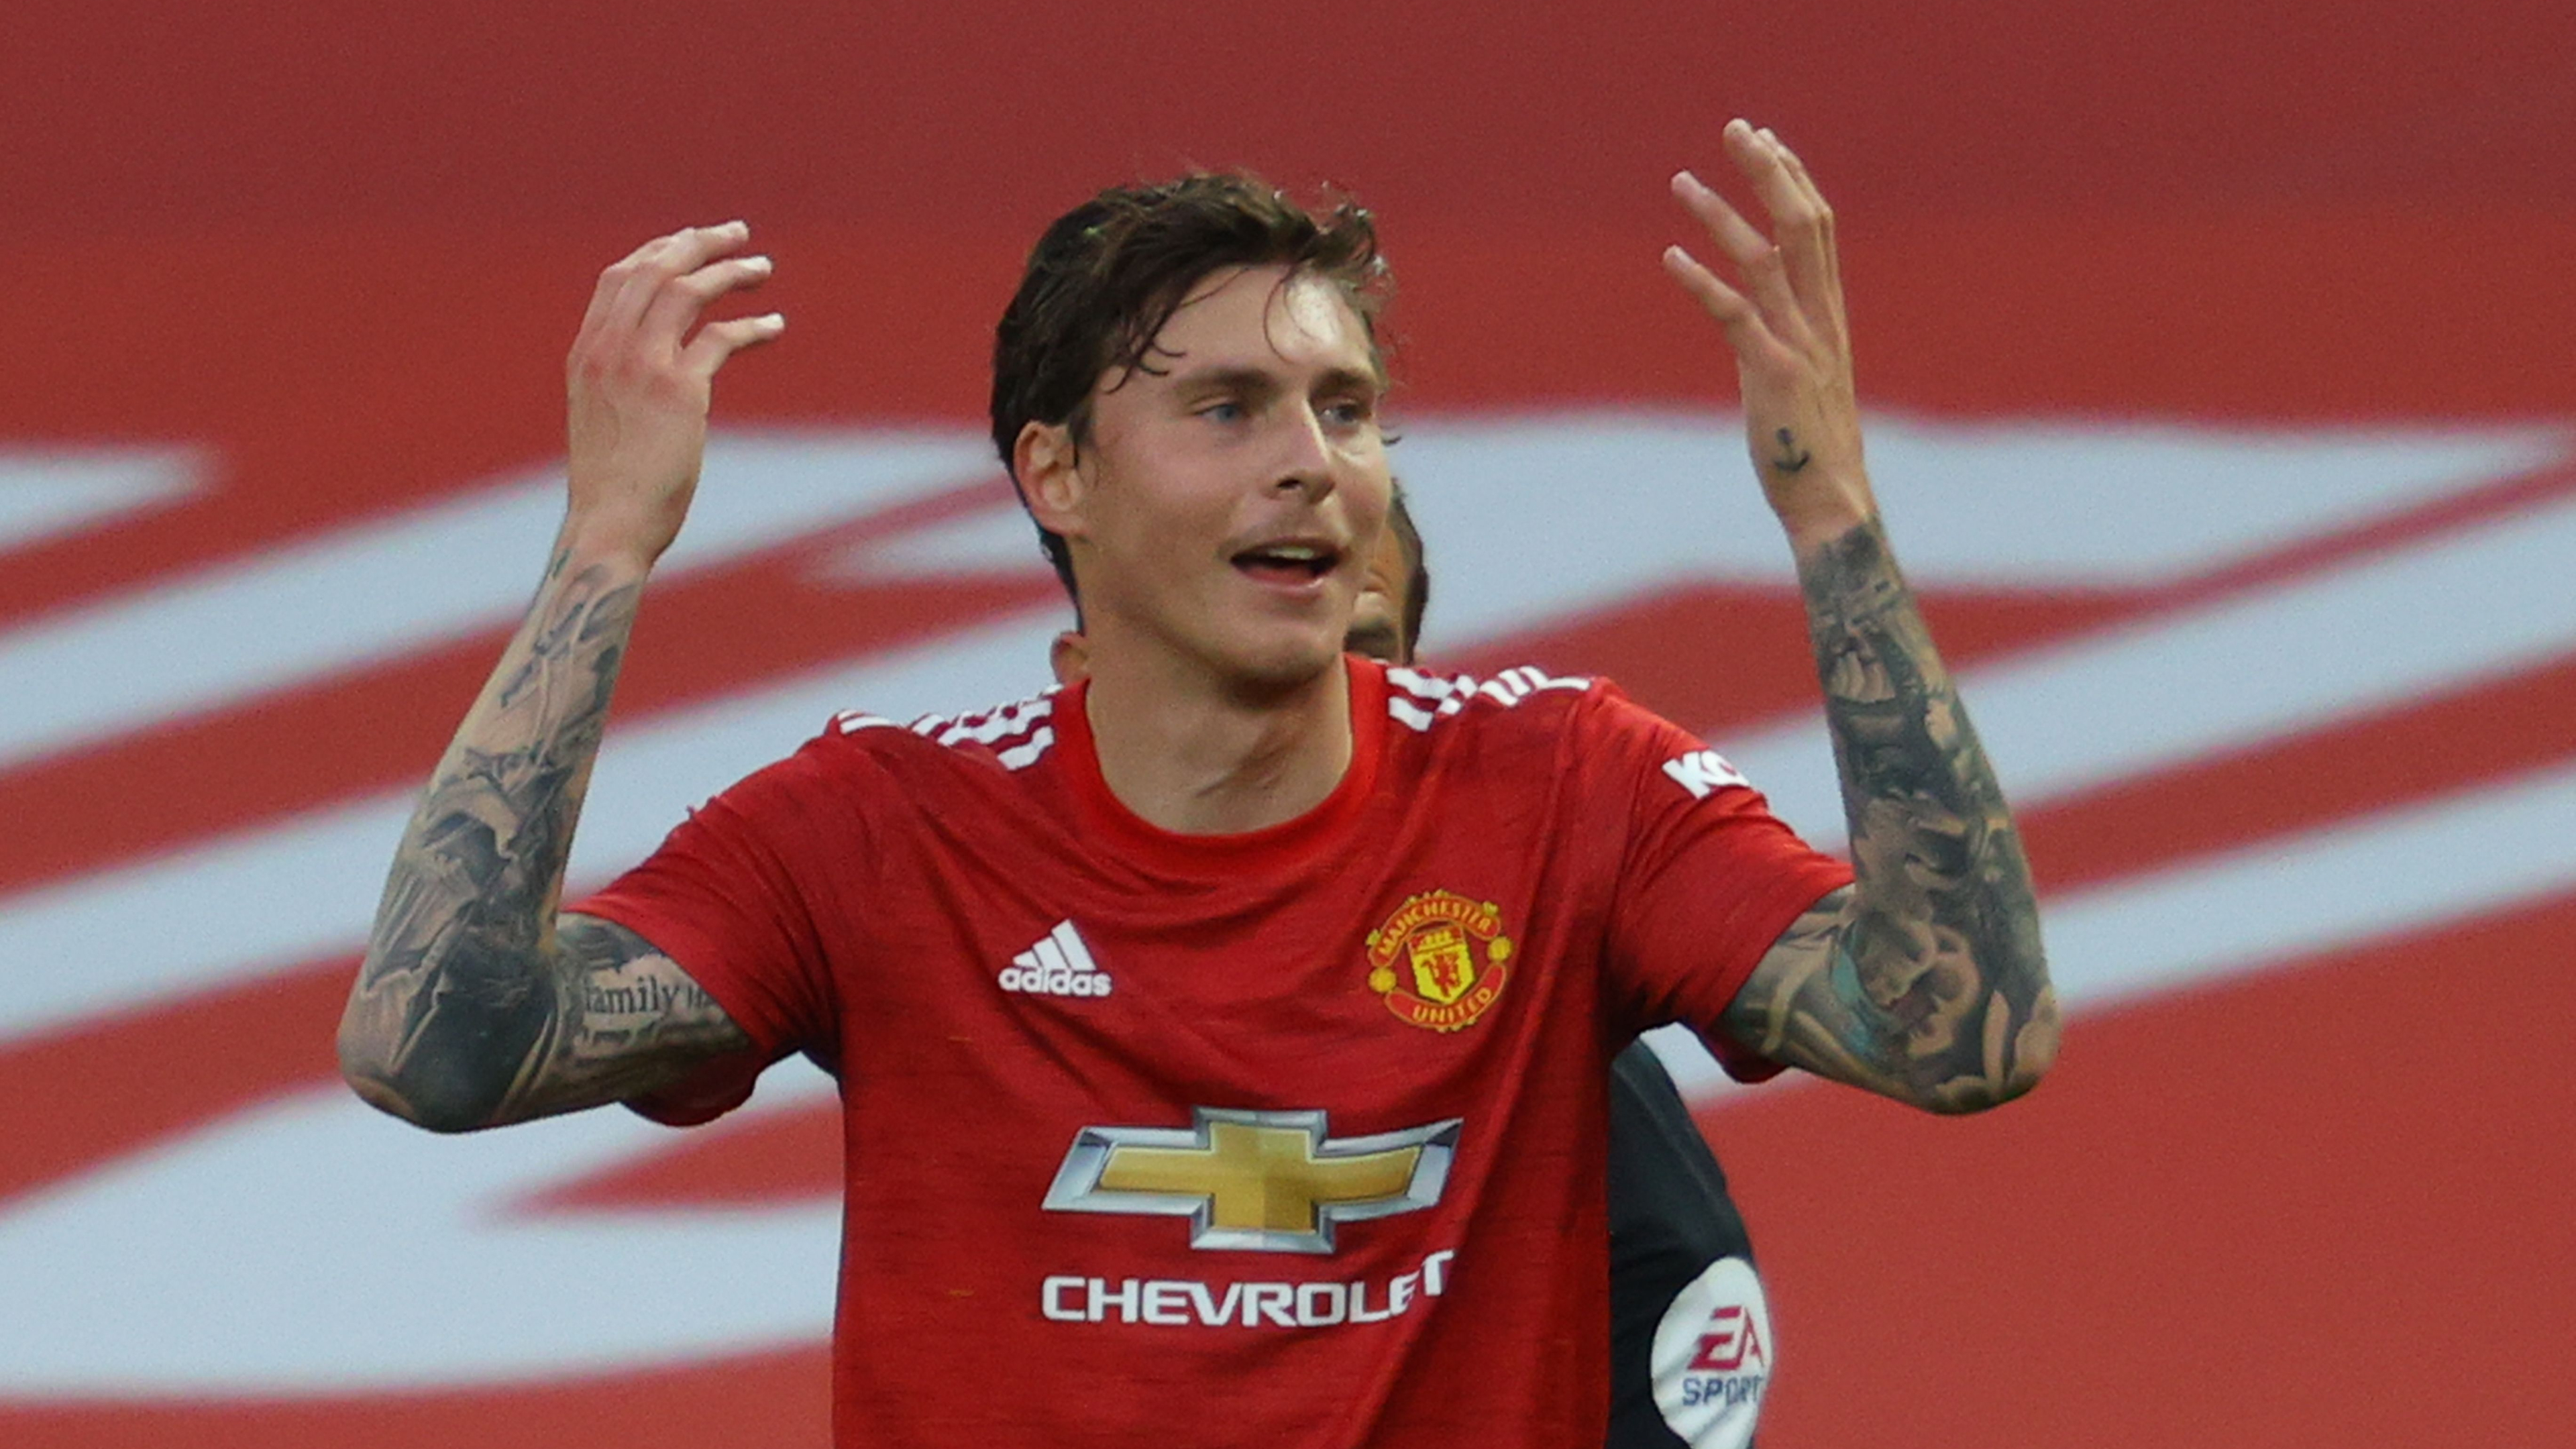 Lindelof delivers 'okay' assessment of Man Utd as they 'haven't won anything yet'